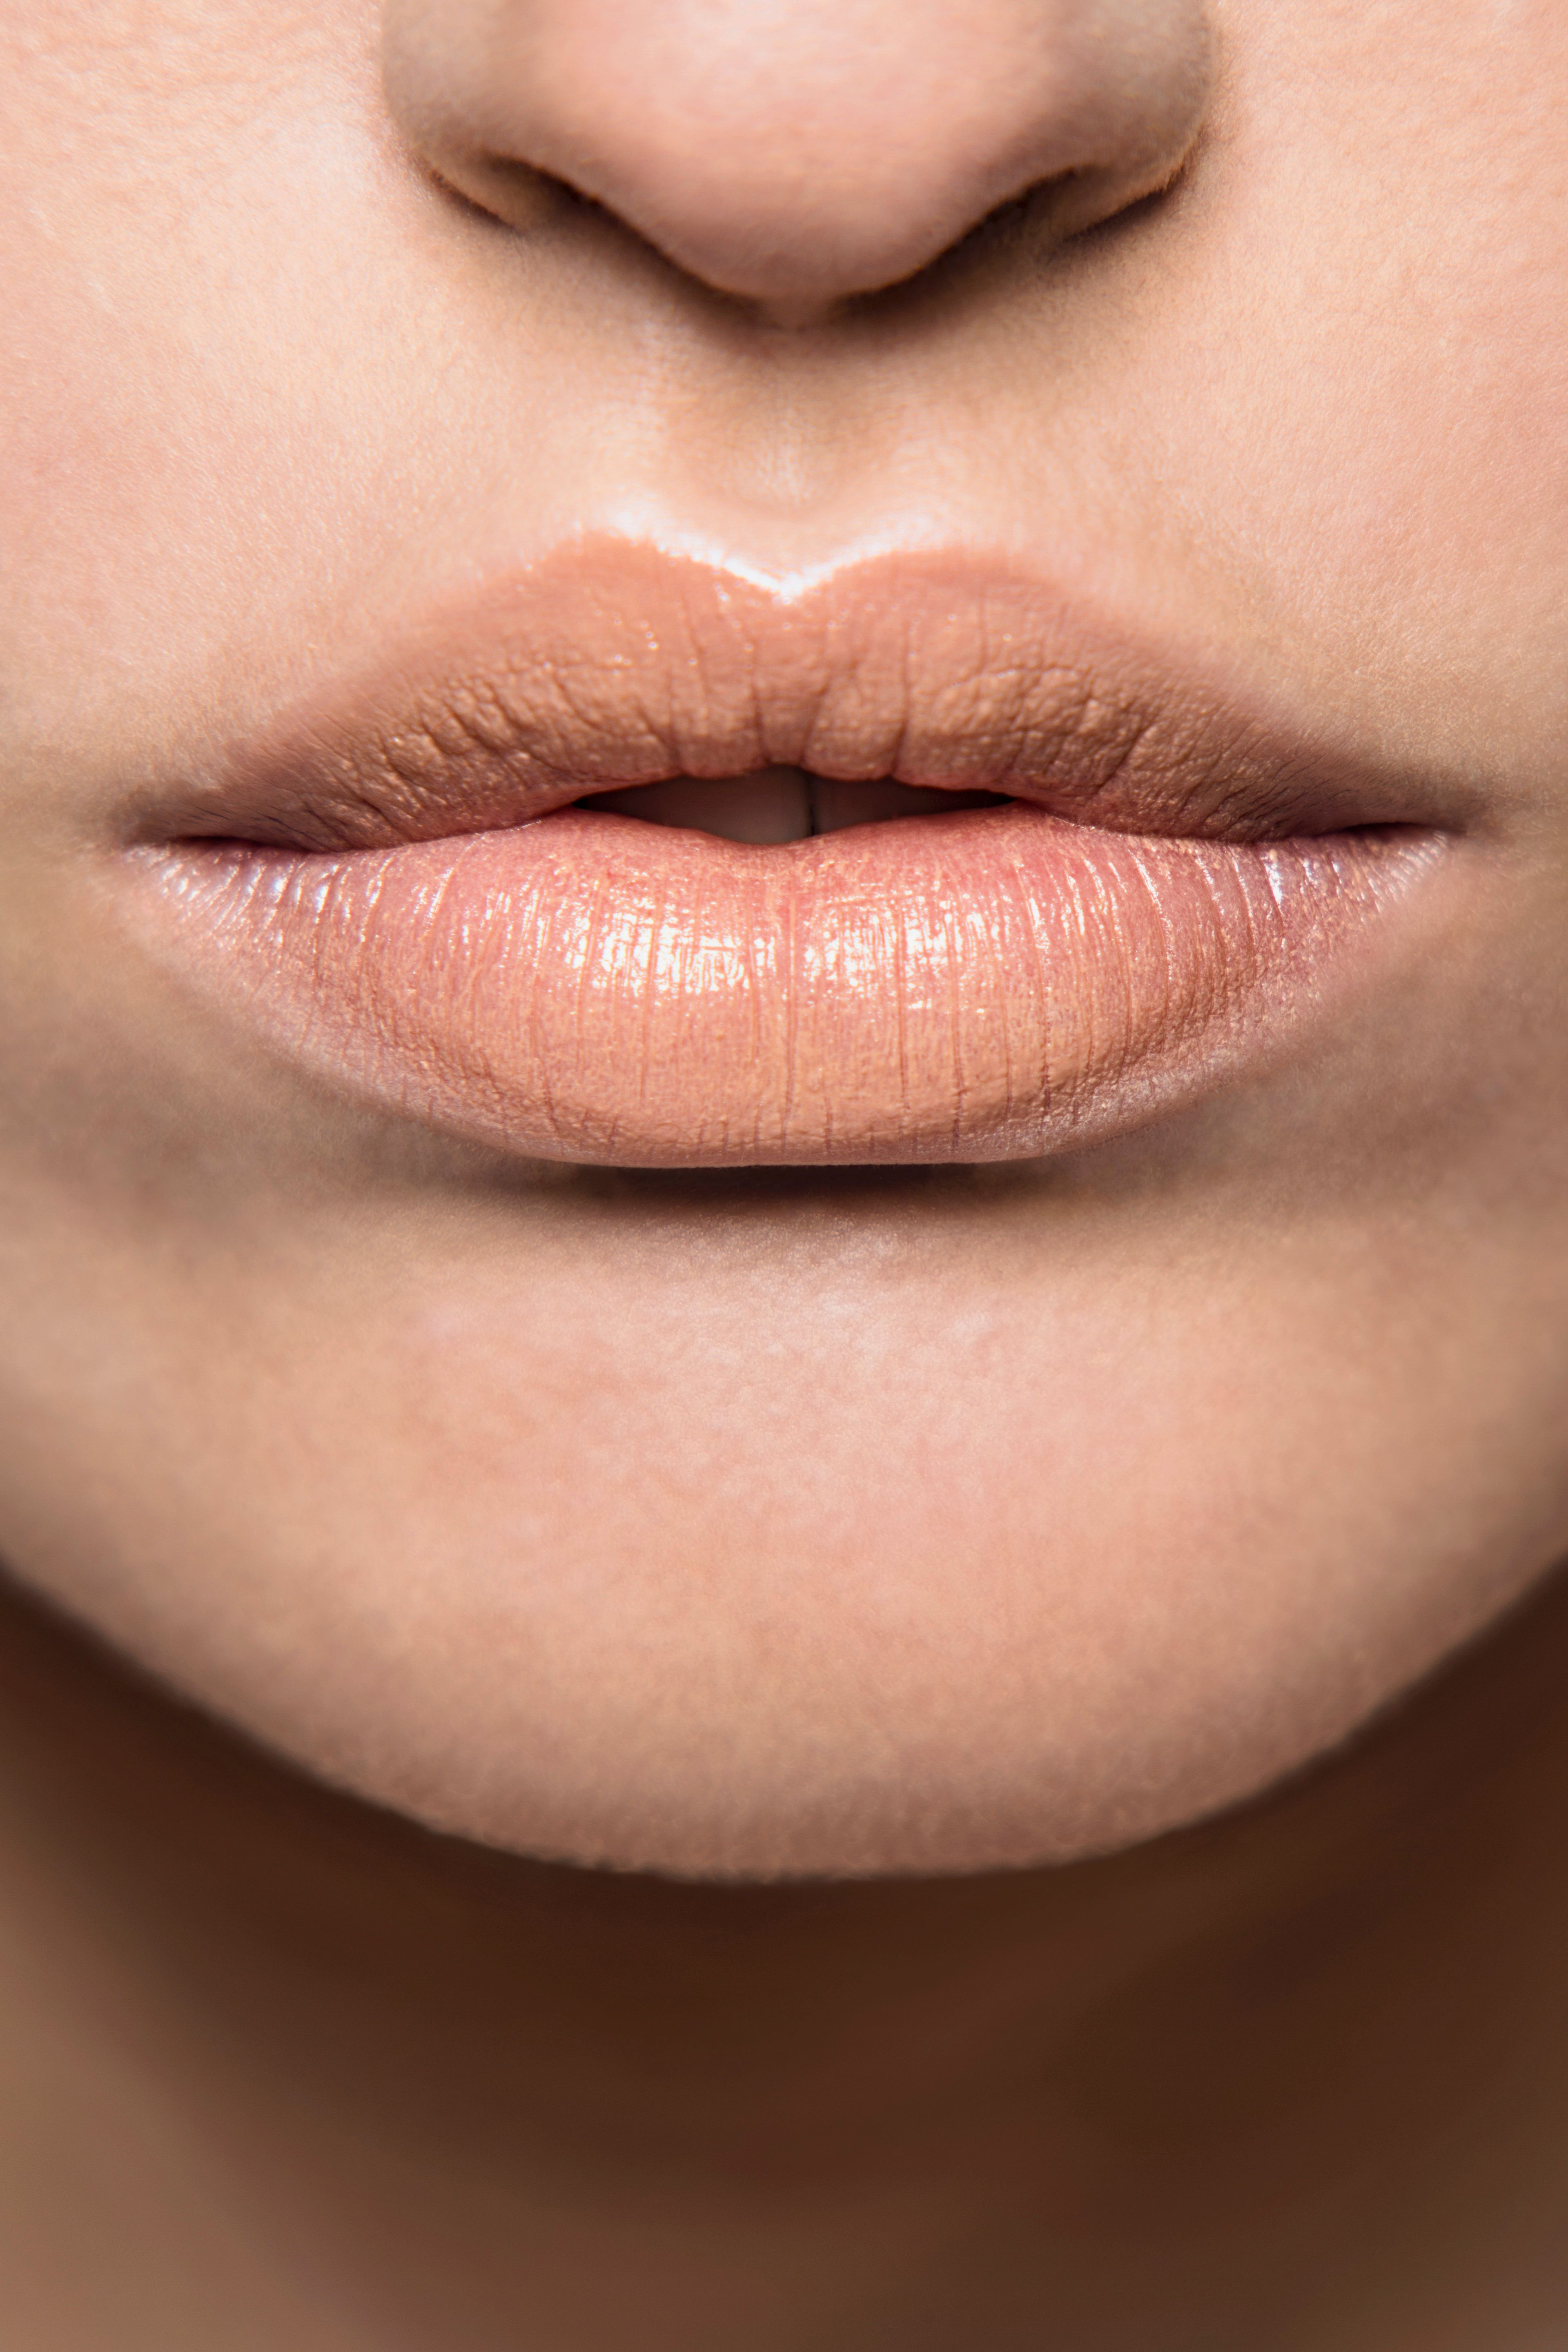 mouth, make-up, lips, lipstick, part of, bare,parted lips, nude, nude look, neutral color, symmetry